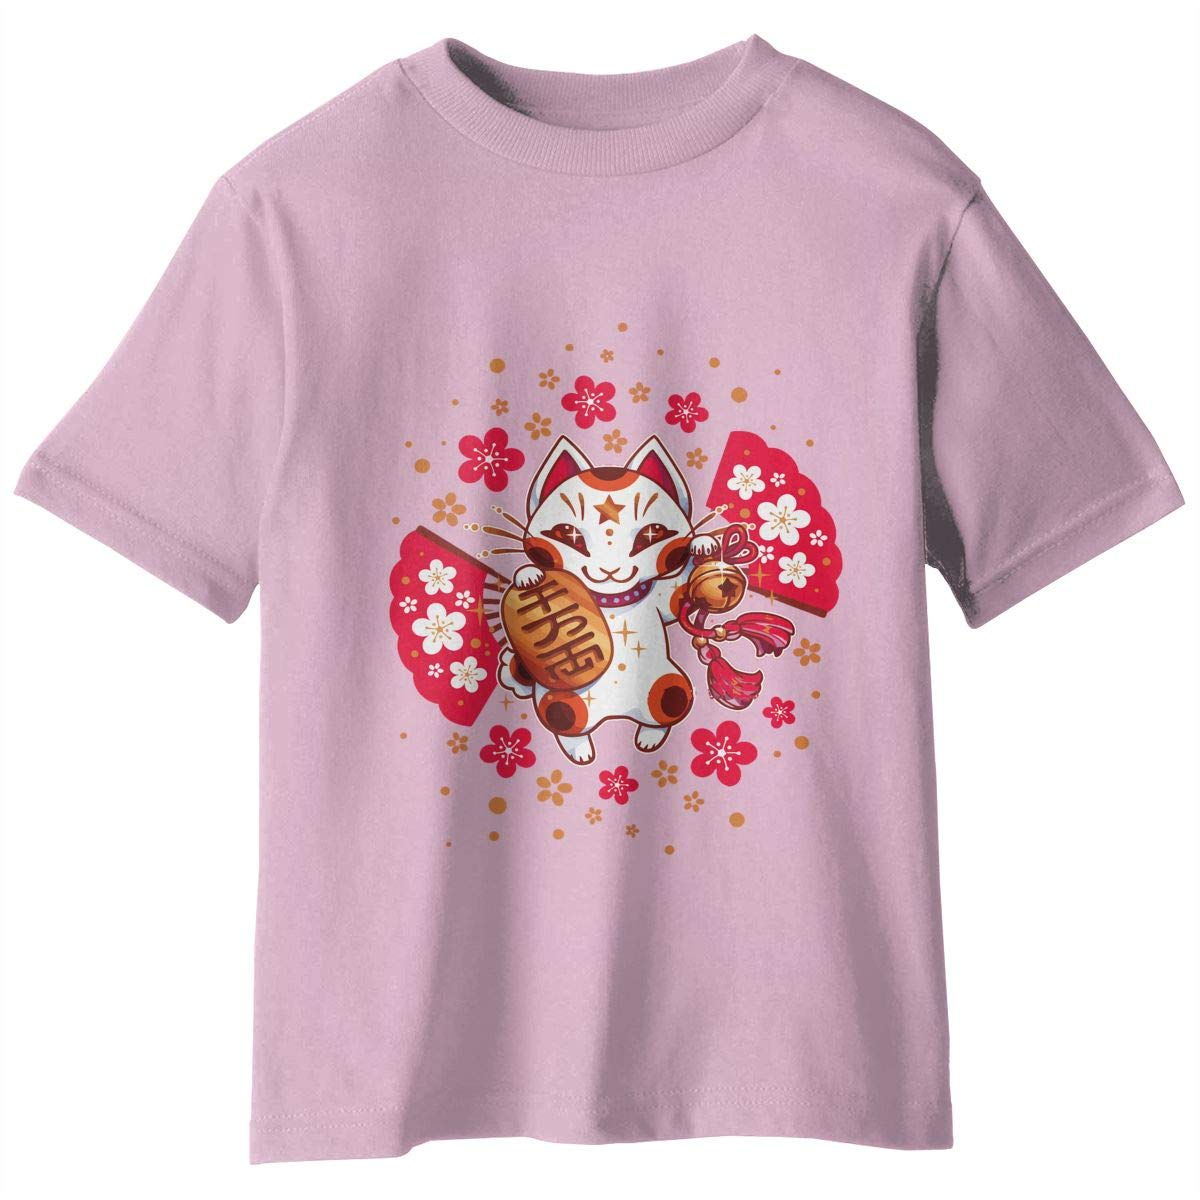 Japanese Lucky Cat Boys Girls Infant Classic 2-6Year Old Short Sleeve Crewneck T-Shirt Tops